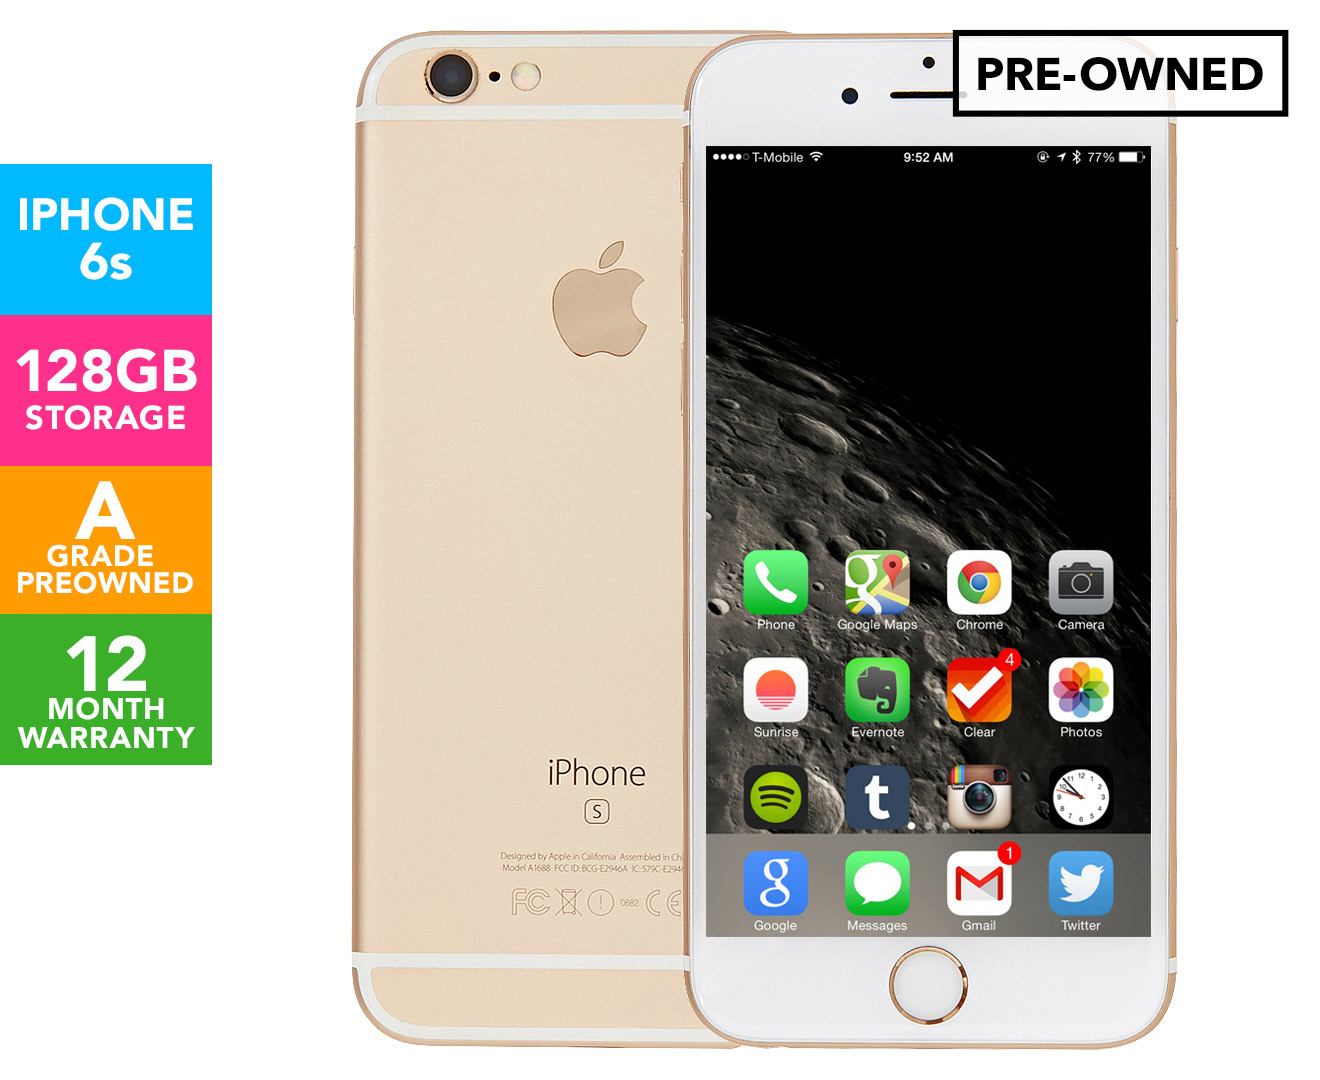 iphone 6 pre owned apple iphone 6s 128gb gold a grade pre owned catch 1697